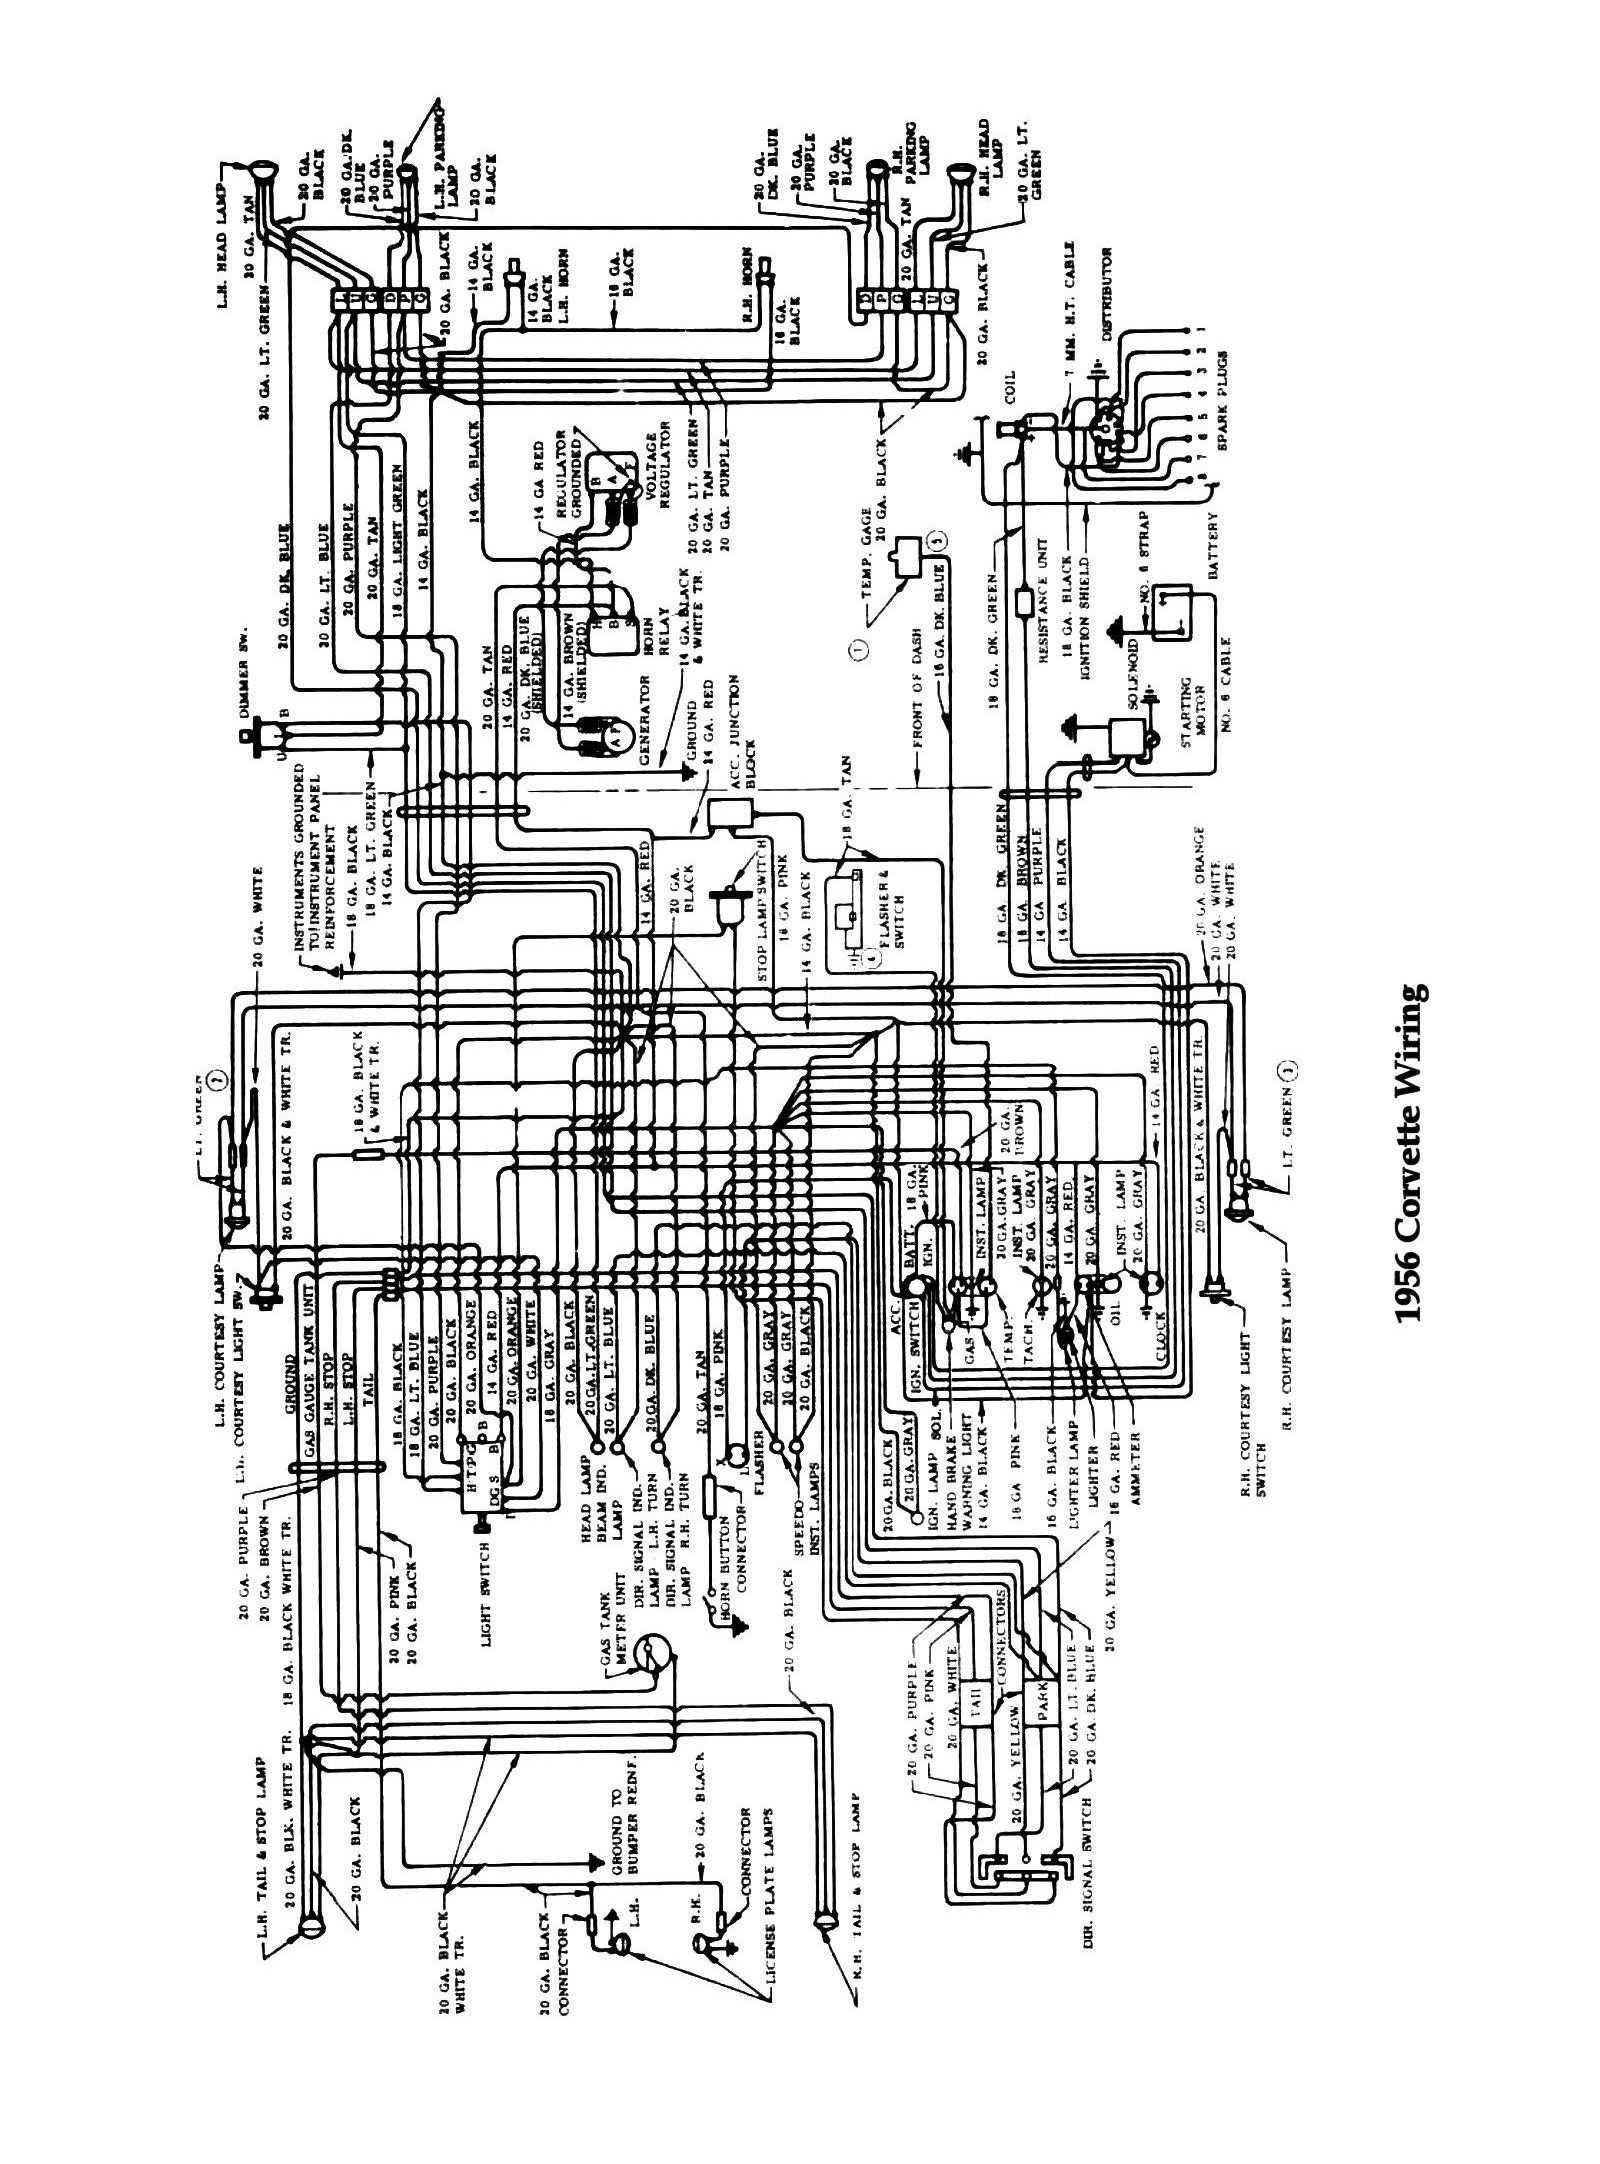 [DIAGRAM] 1992 Buick Lesabre Schematic Wiring Diagrams